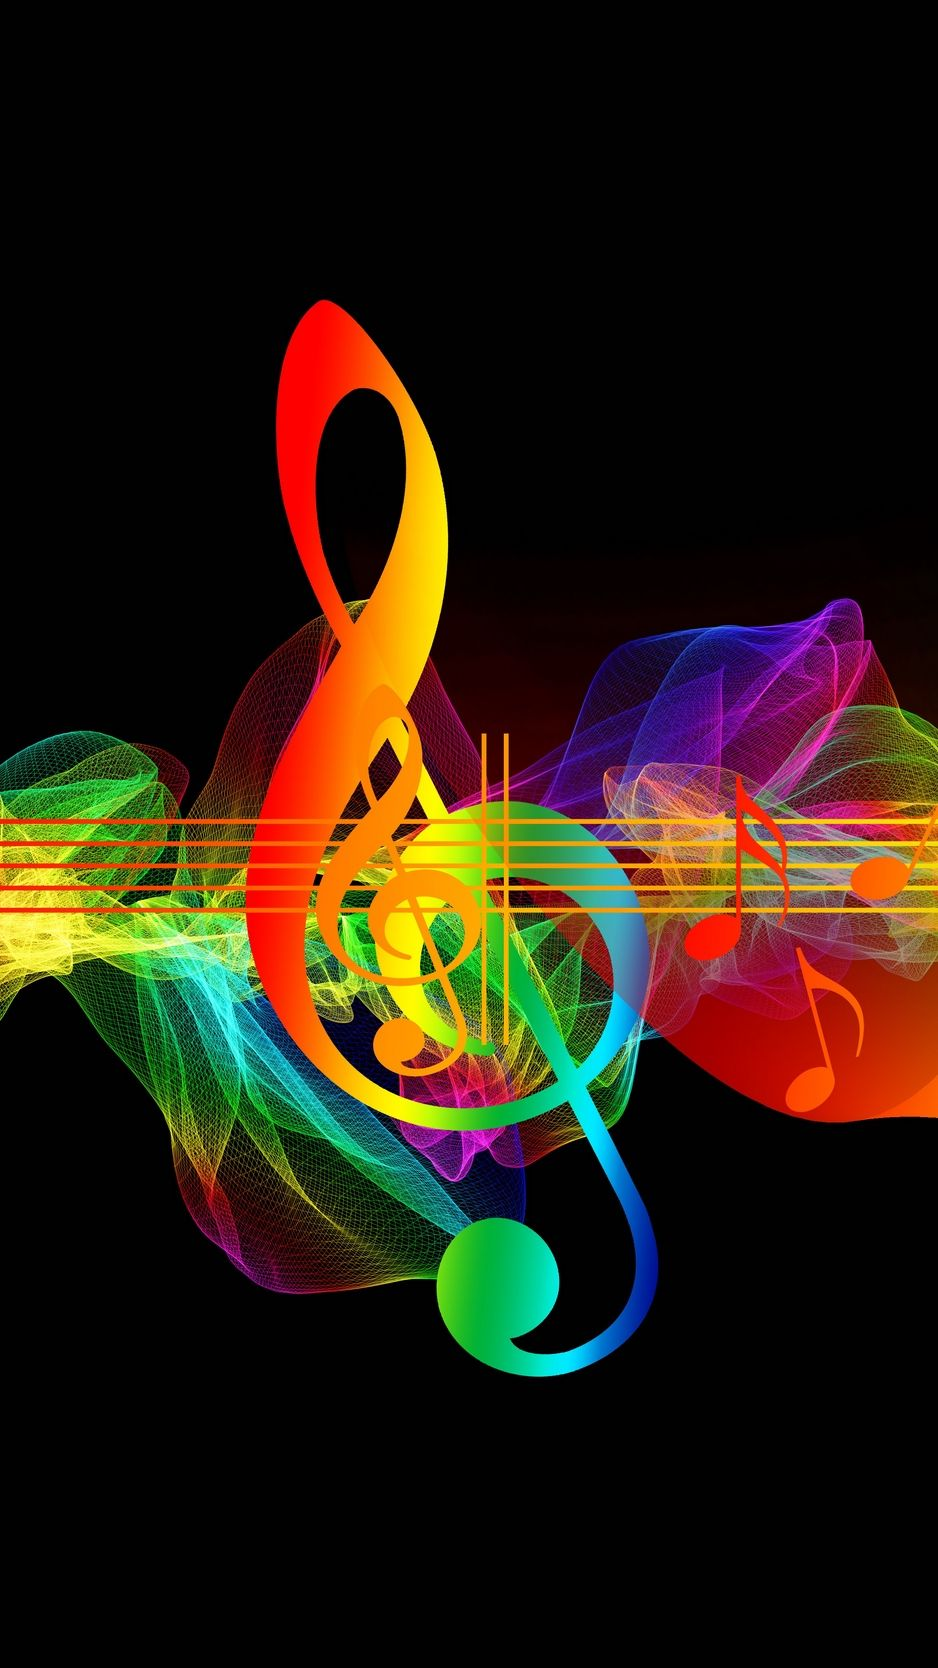 Treble Clef Musical Notes Multicolored Rainbow Wallpaper Music Notes Art Music Wallpaper Rainbow Wallpaper